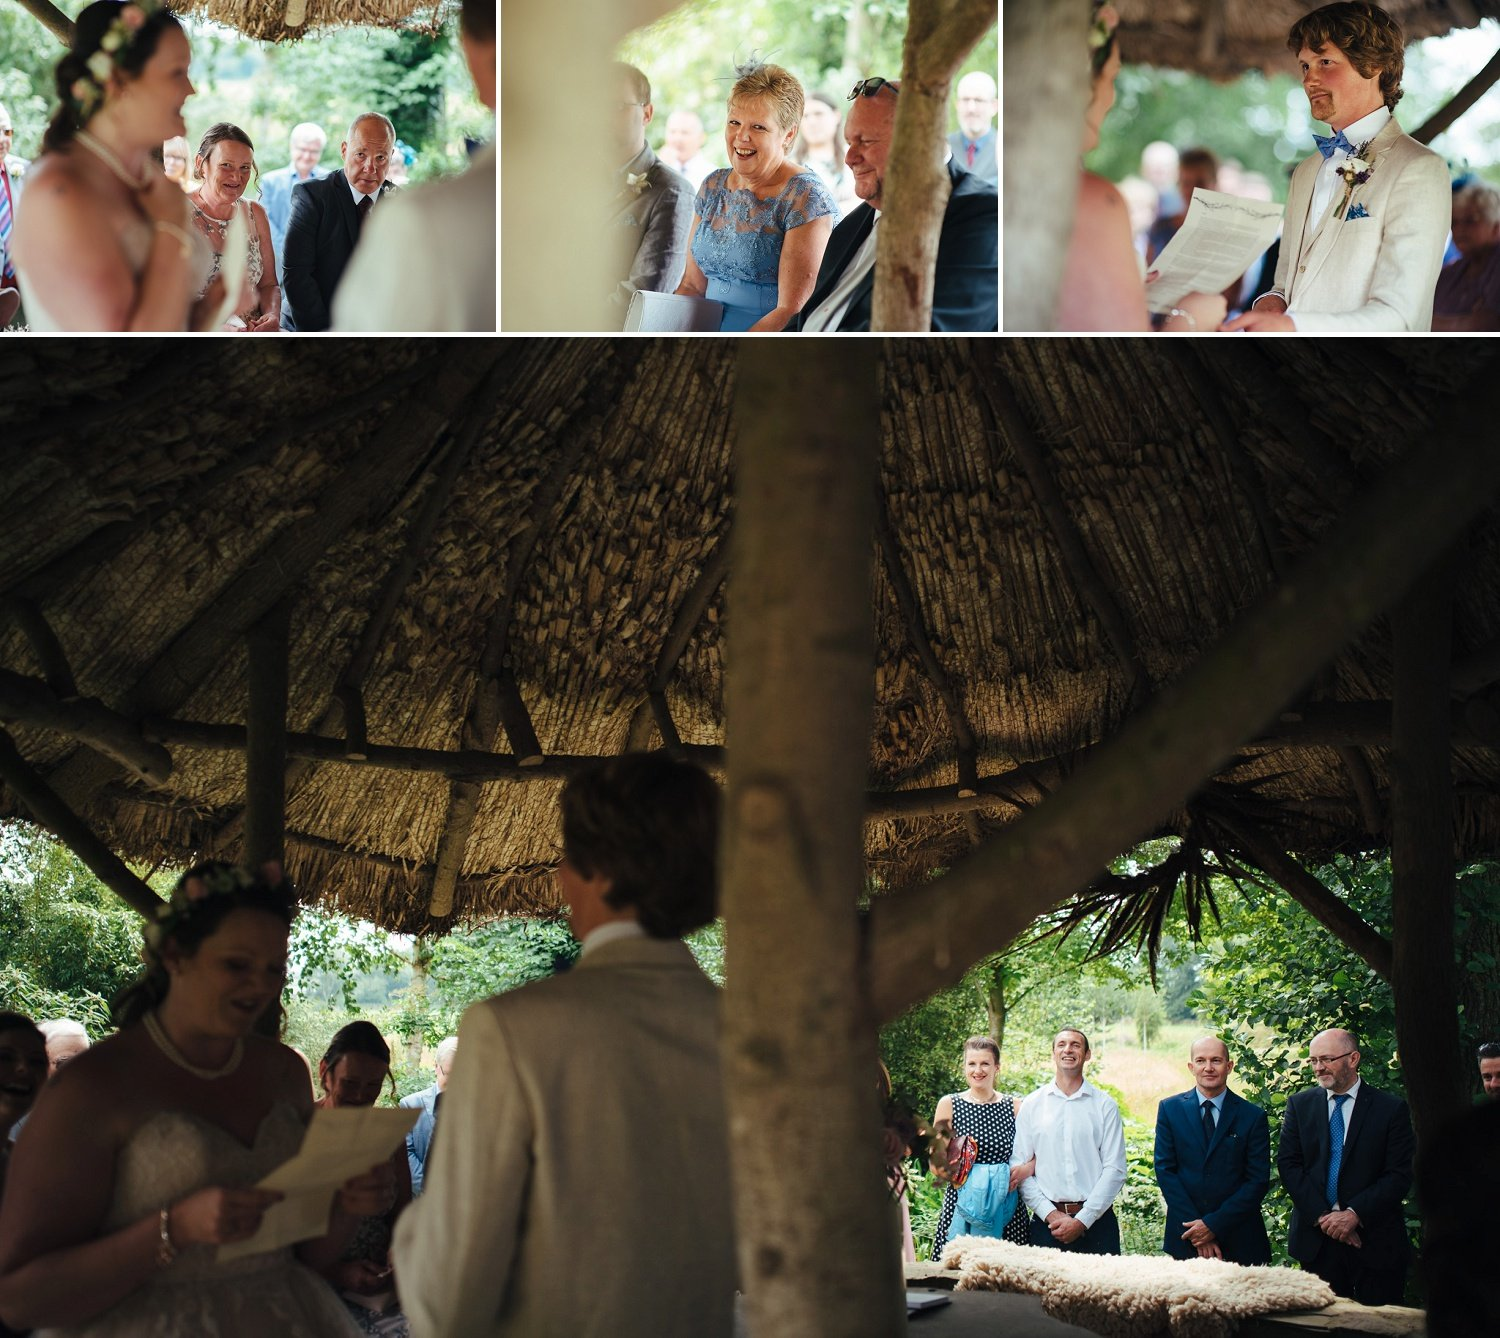 Marriage vows being read in the hut at Westonbury Mill Water Gardens